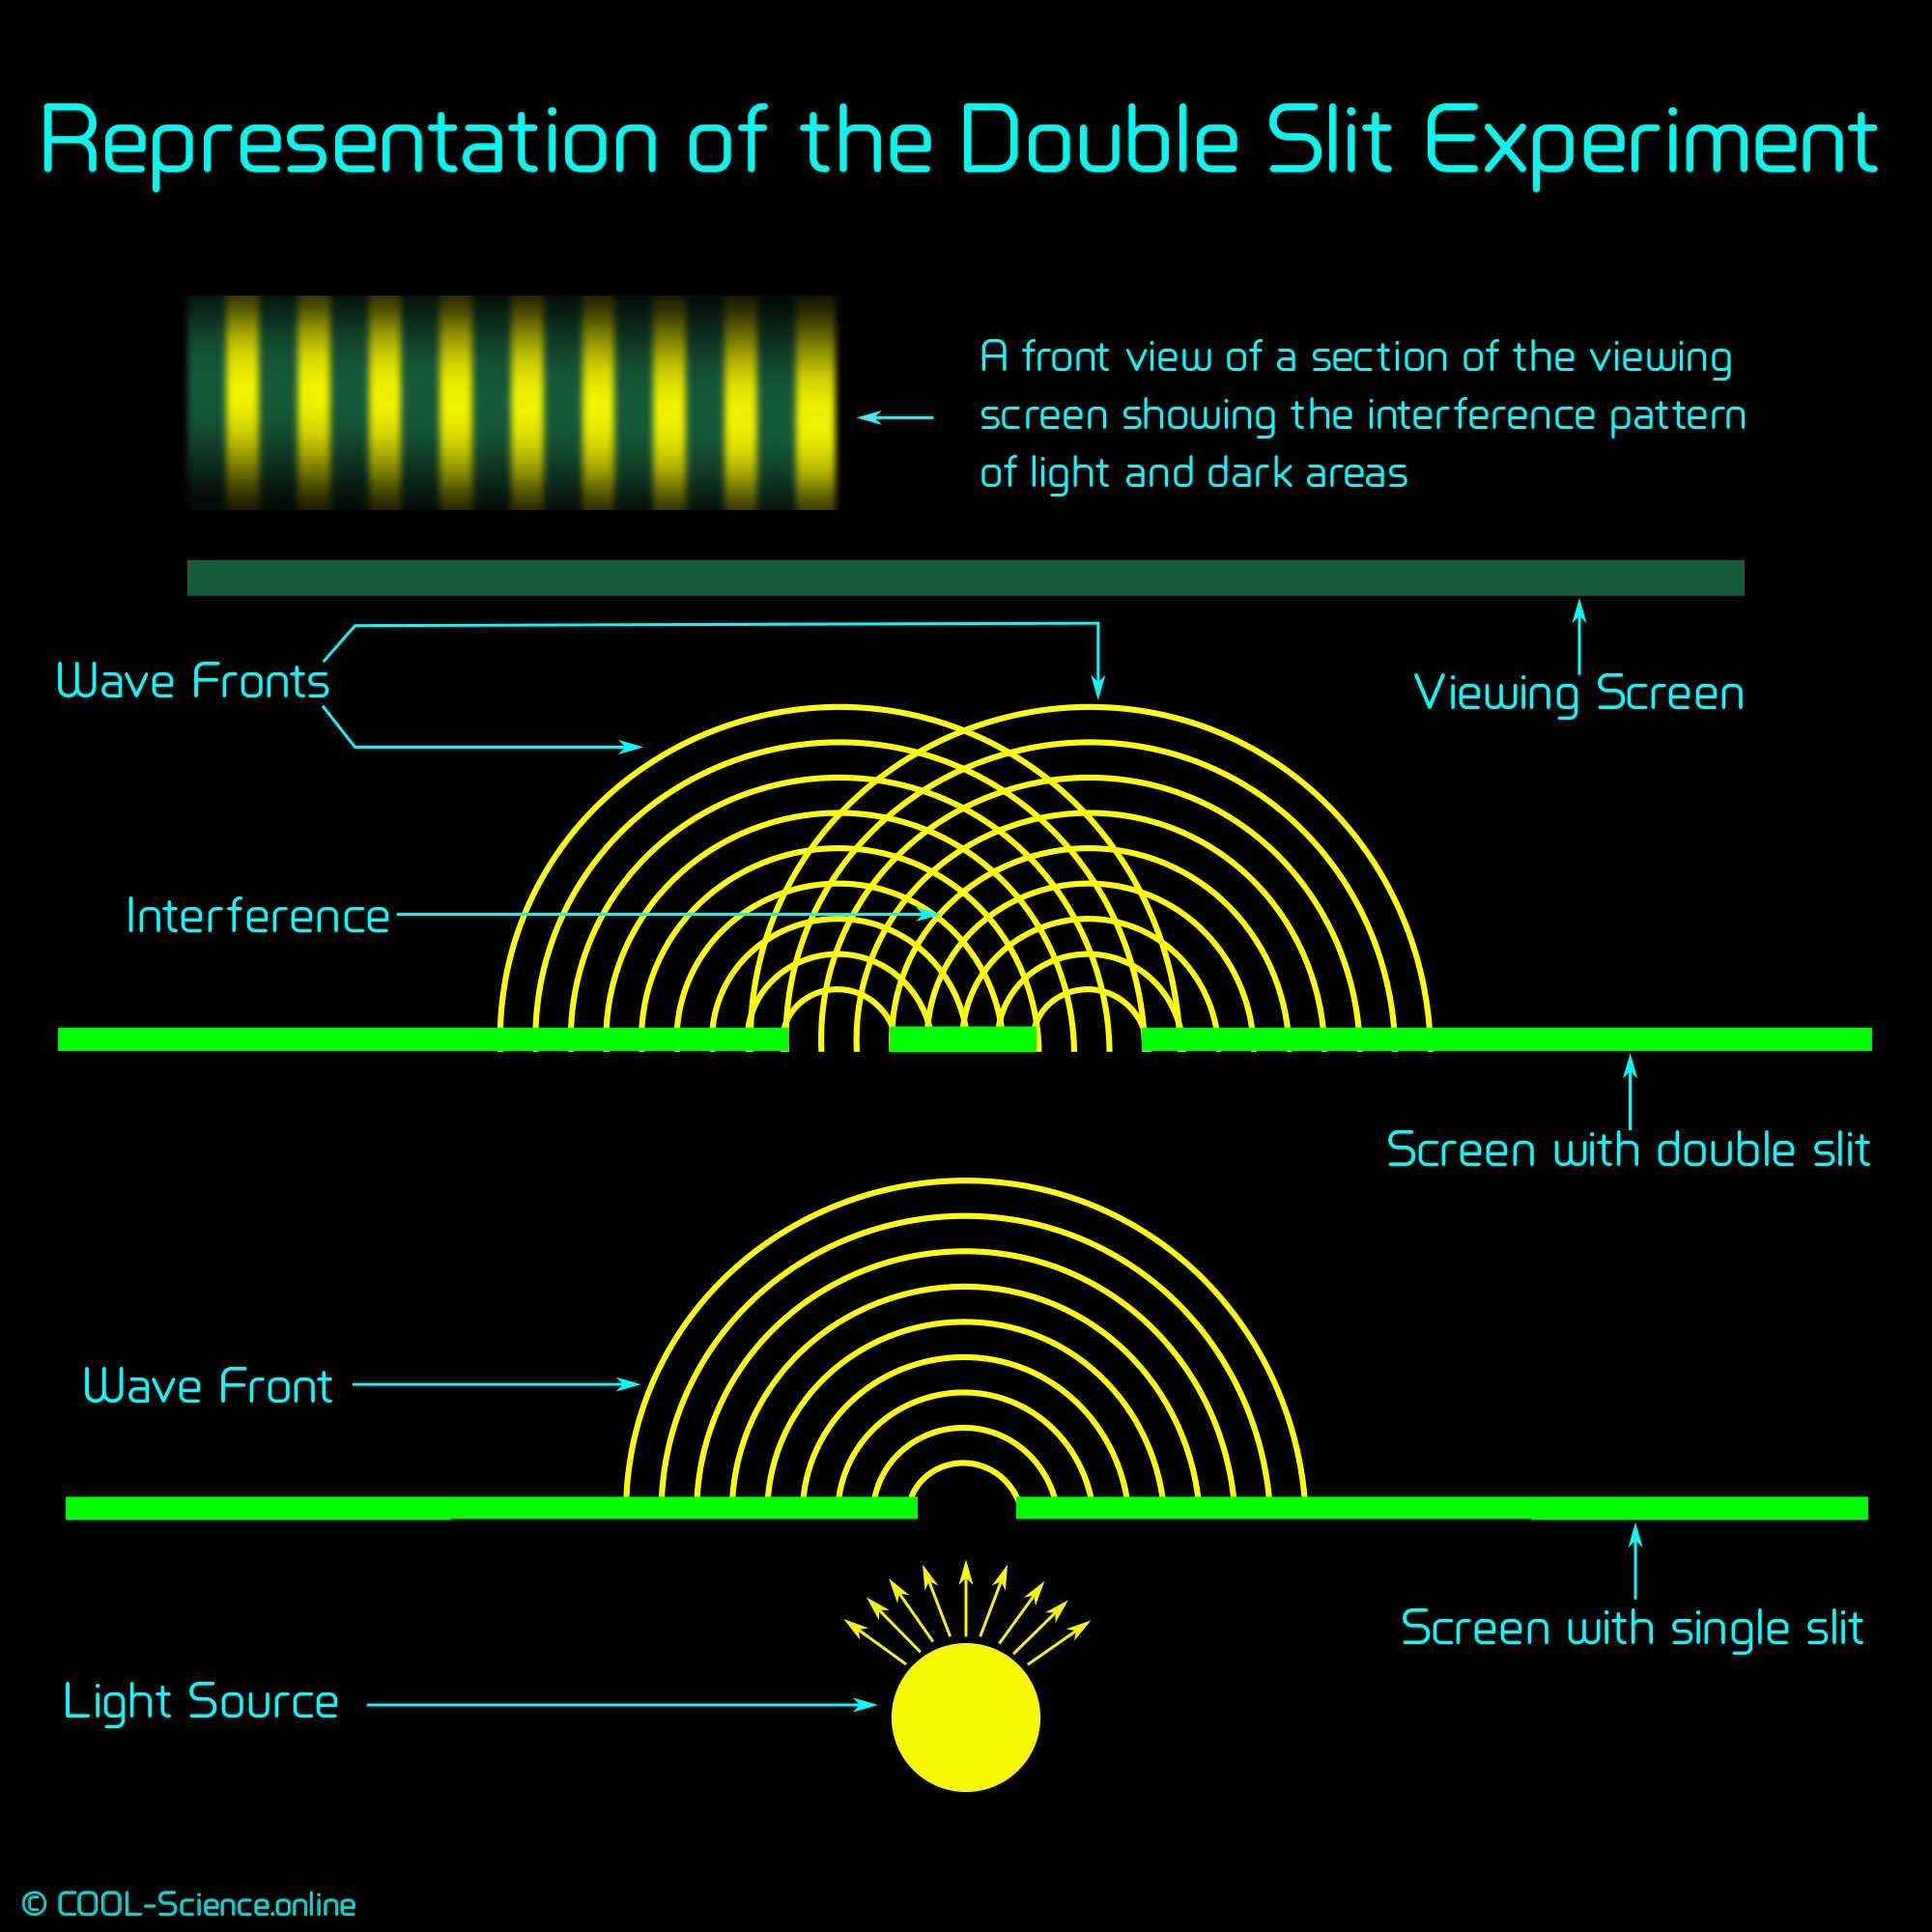 Diagram representing the double slit experiment